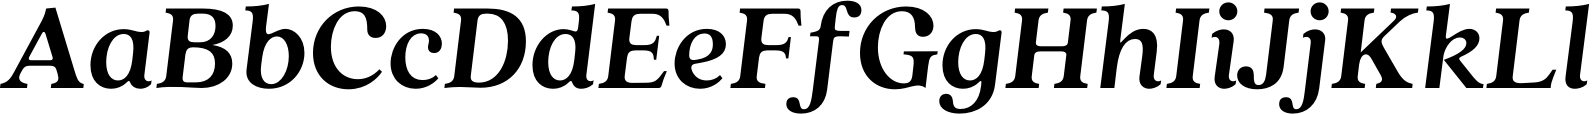 Quincy CF Bold Italic Font